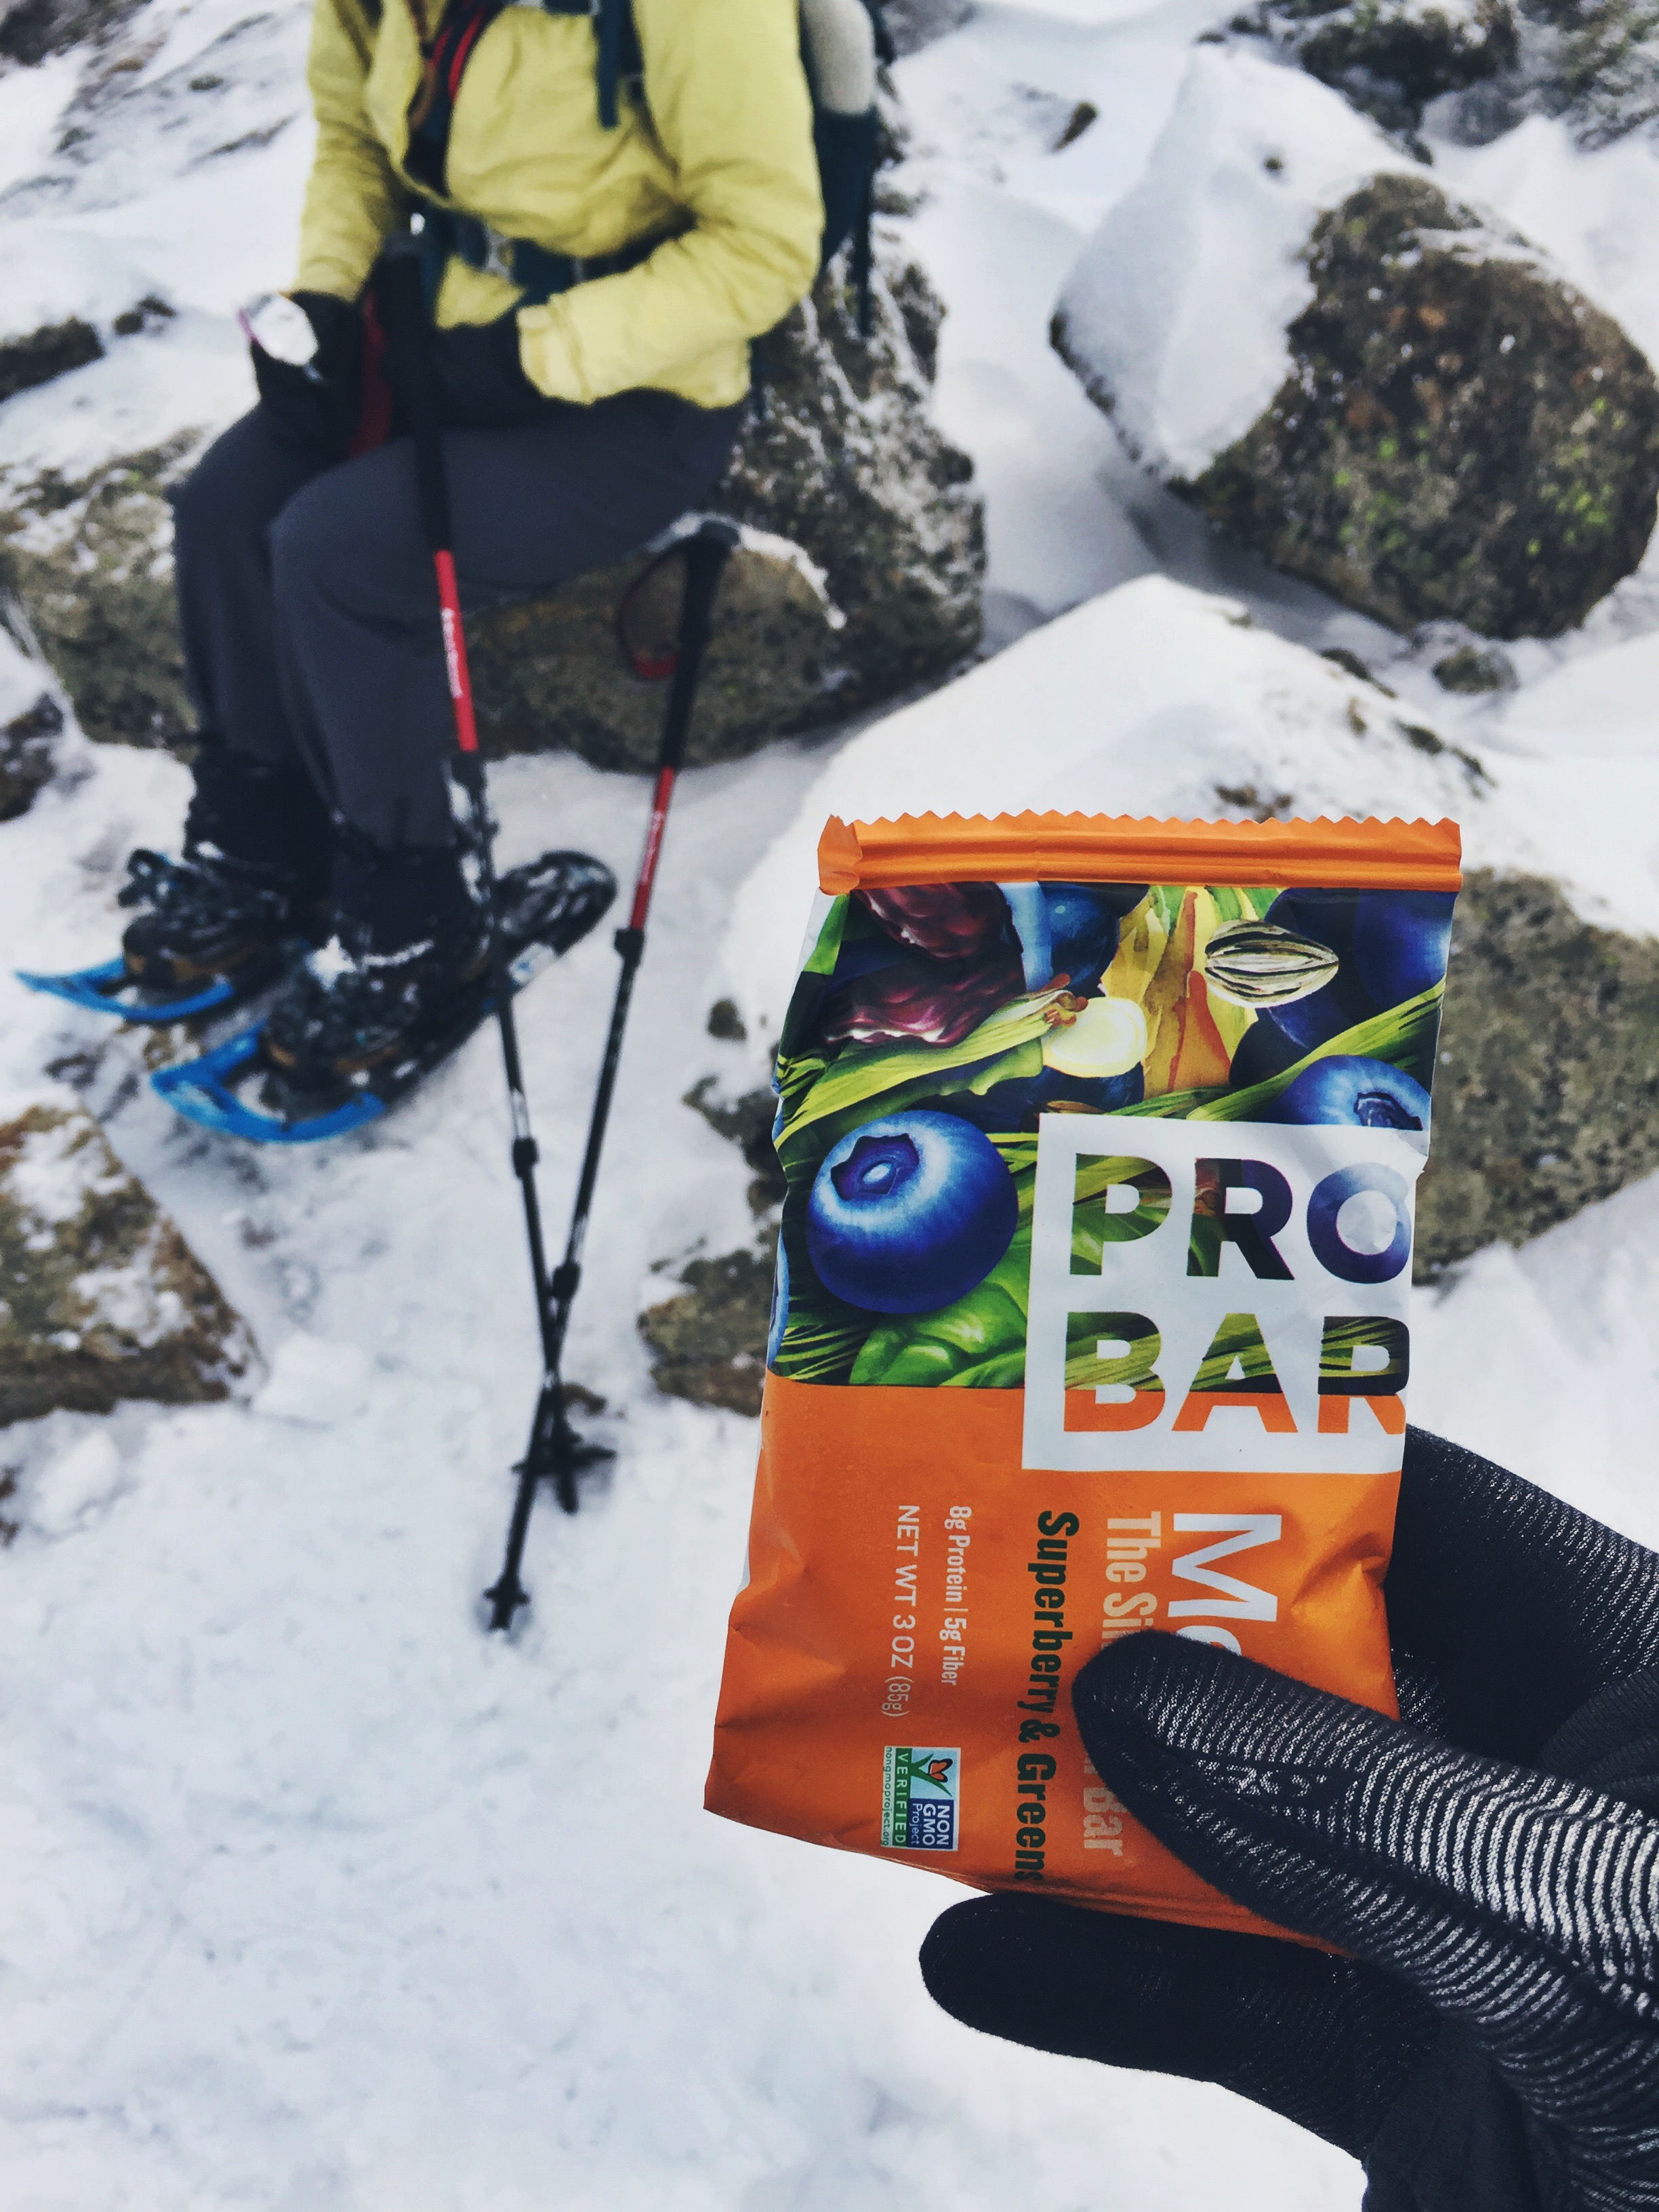 When winter hiking, it is important to choose snacks that are still consumable when frozen. This ProBar was a first time try and it was still entirely malleable.